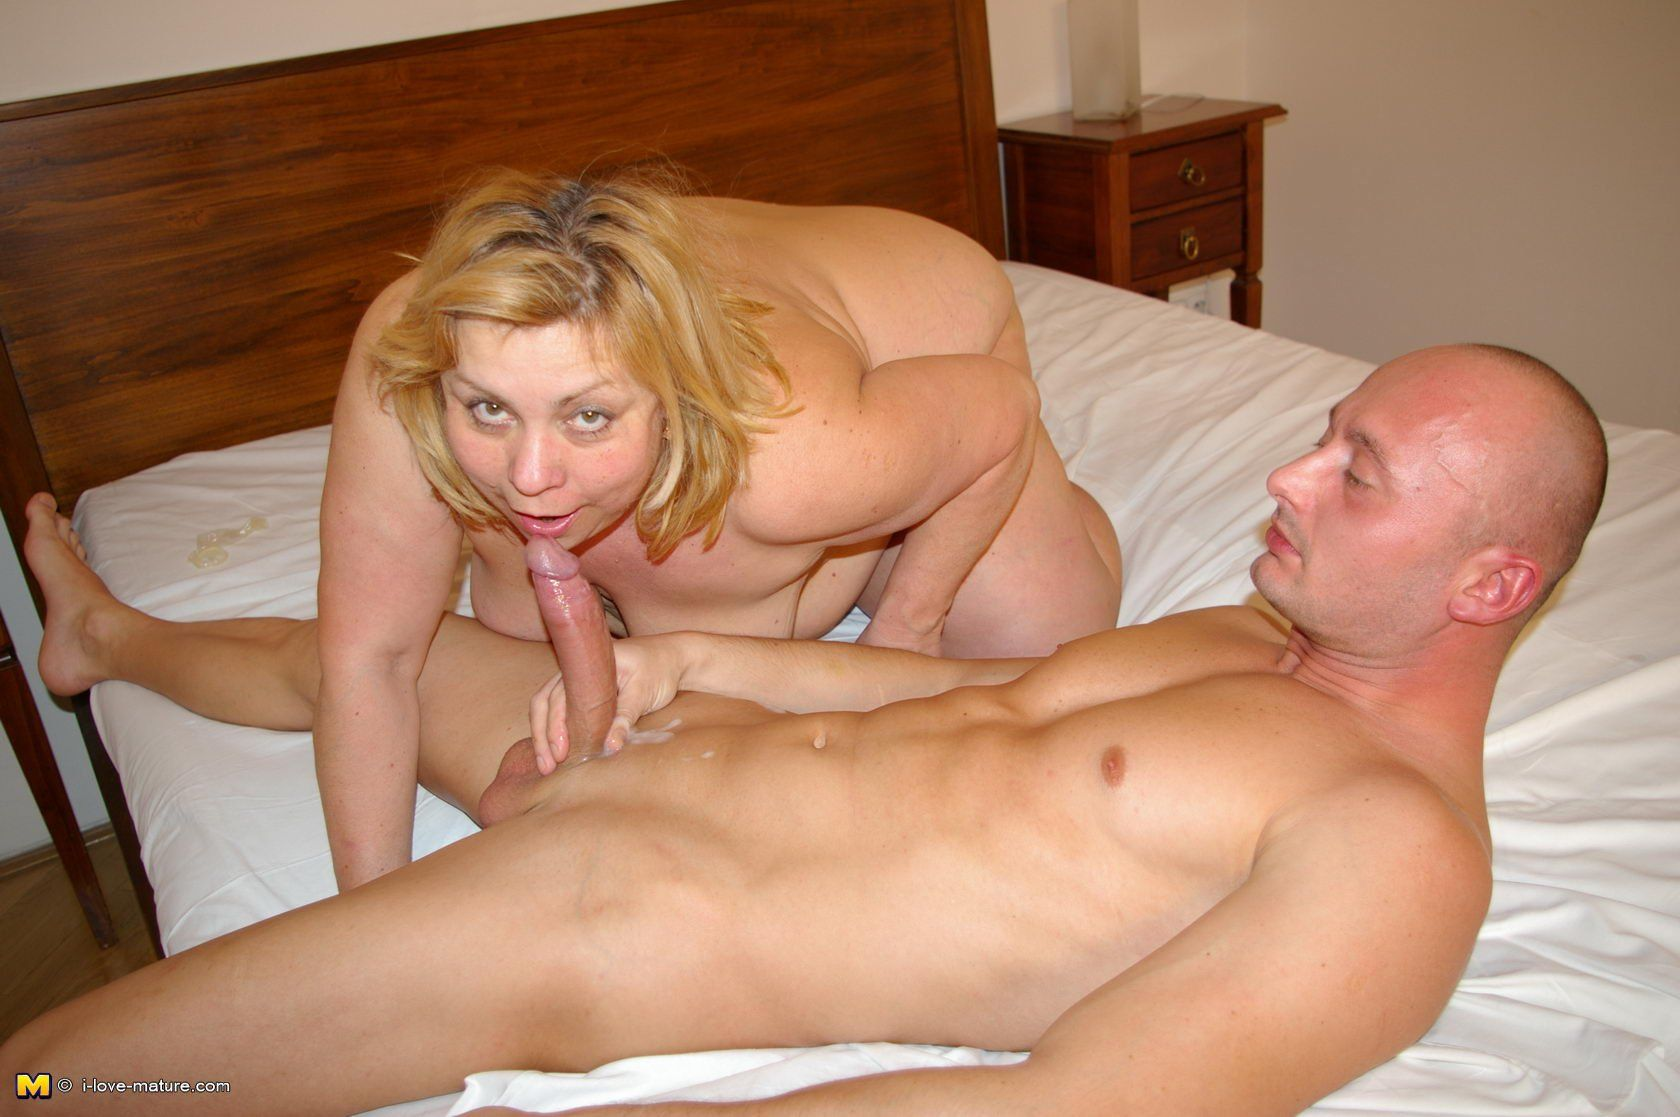 Artemis reccomend chubby naked blowjob penis and fuck